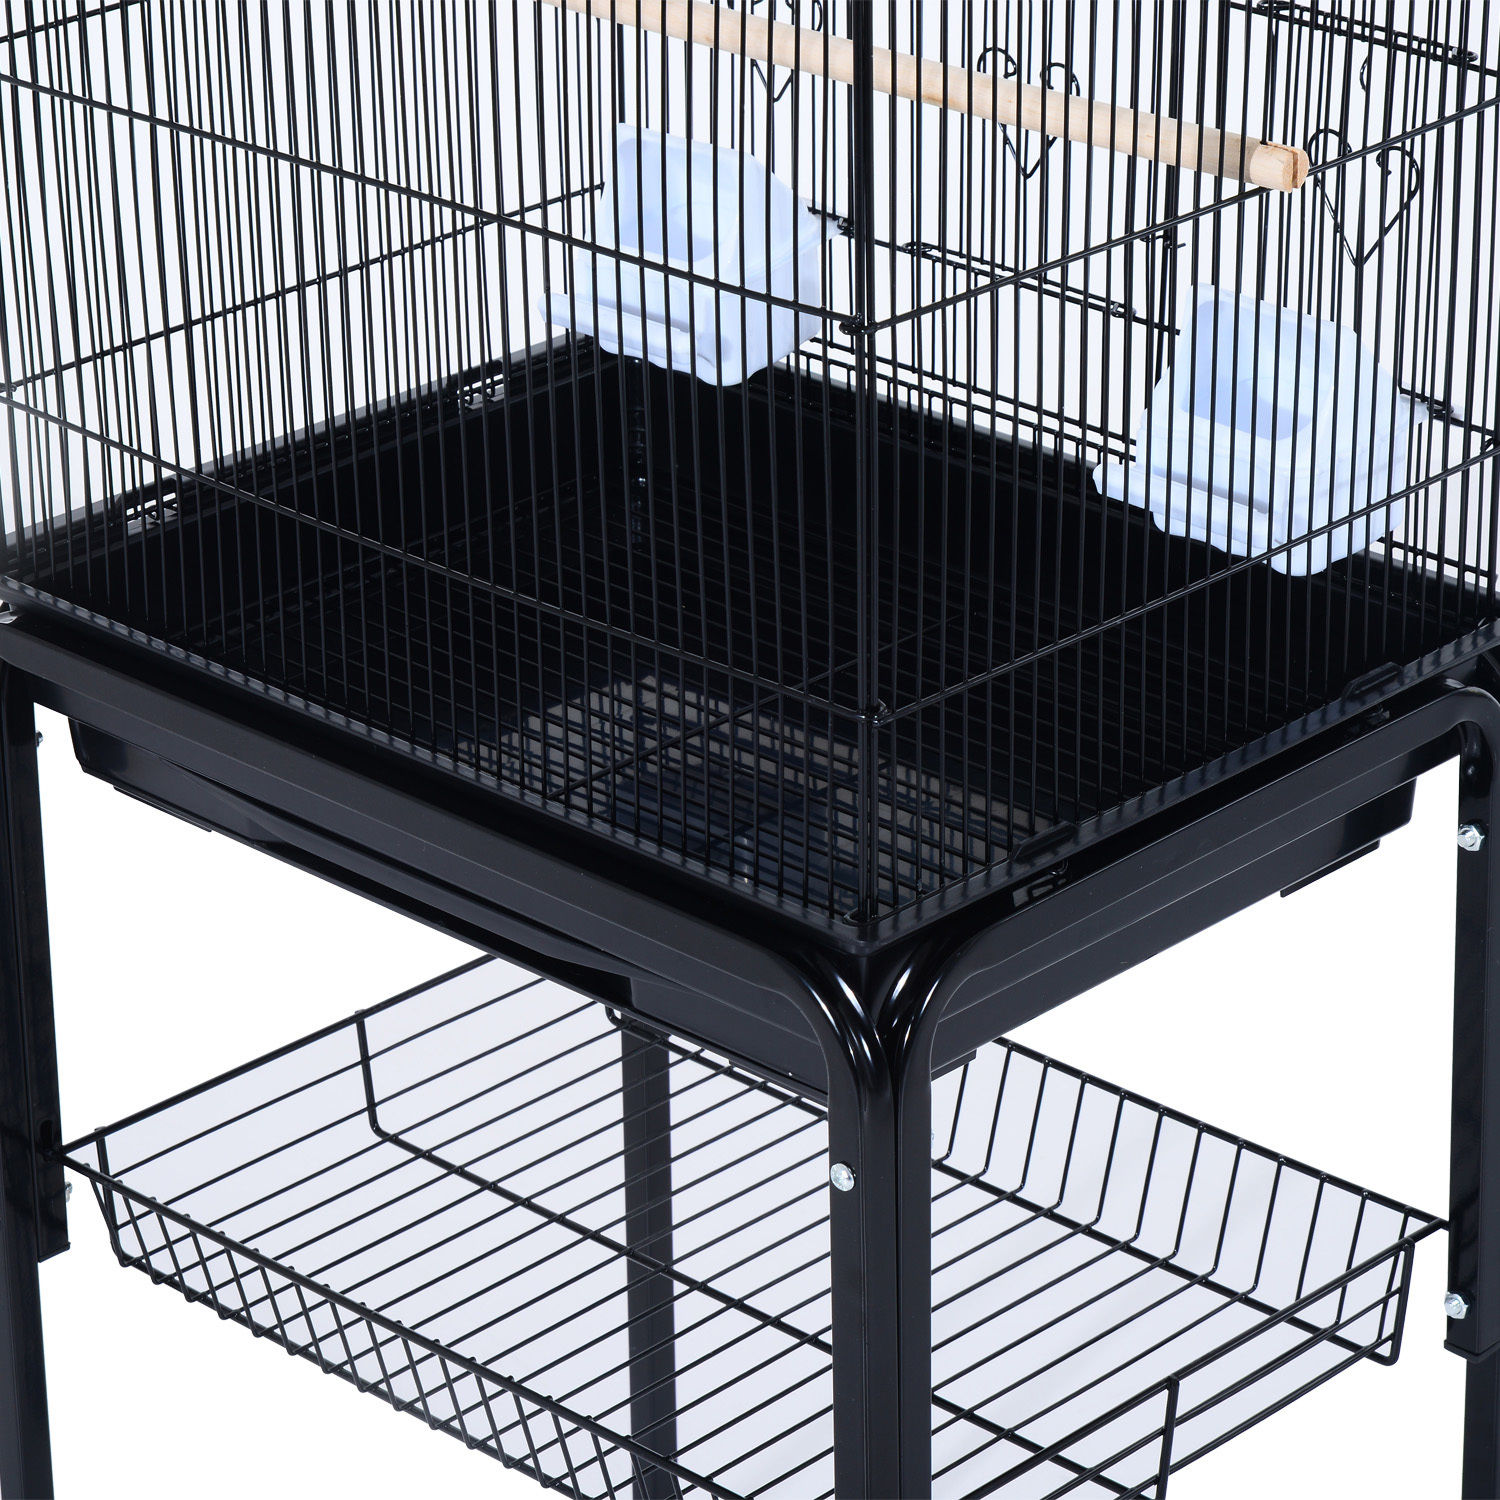 Bird-Cage-63-034-Large-Finch-Parrot-Conure-Metal-Wheels-Play-Top-House-Pet-Supplies thumbnail 6